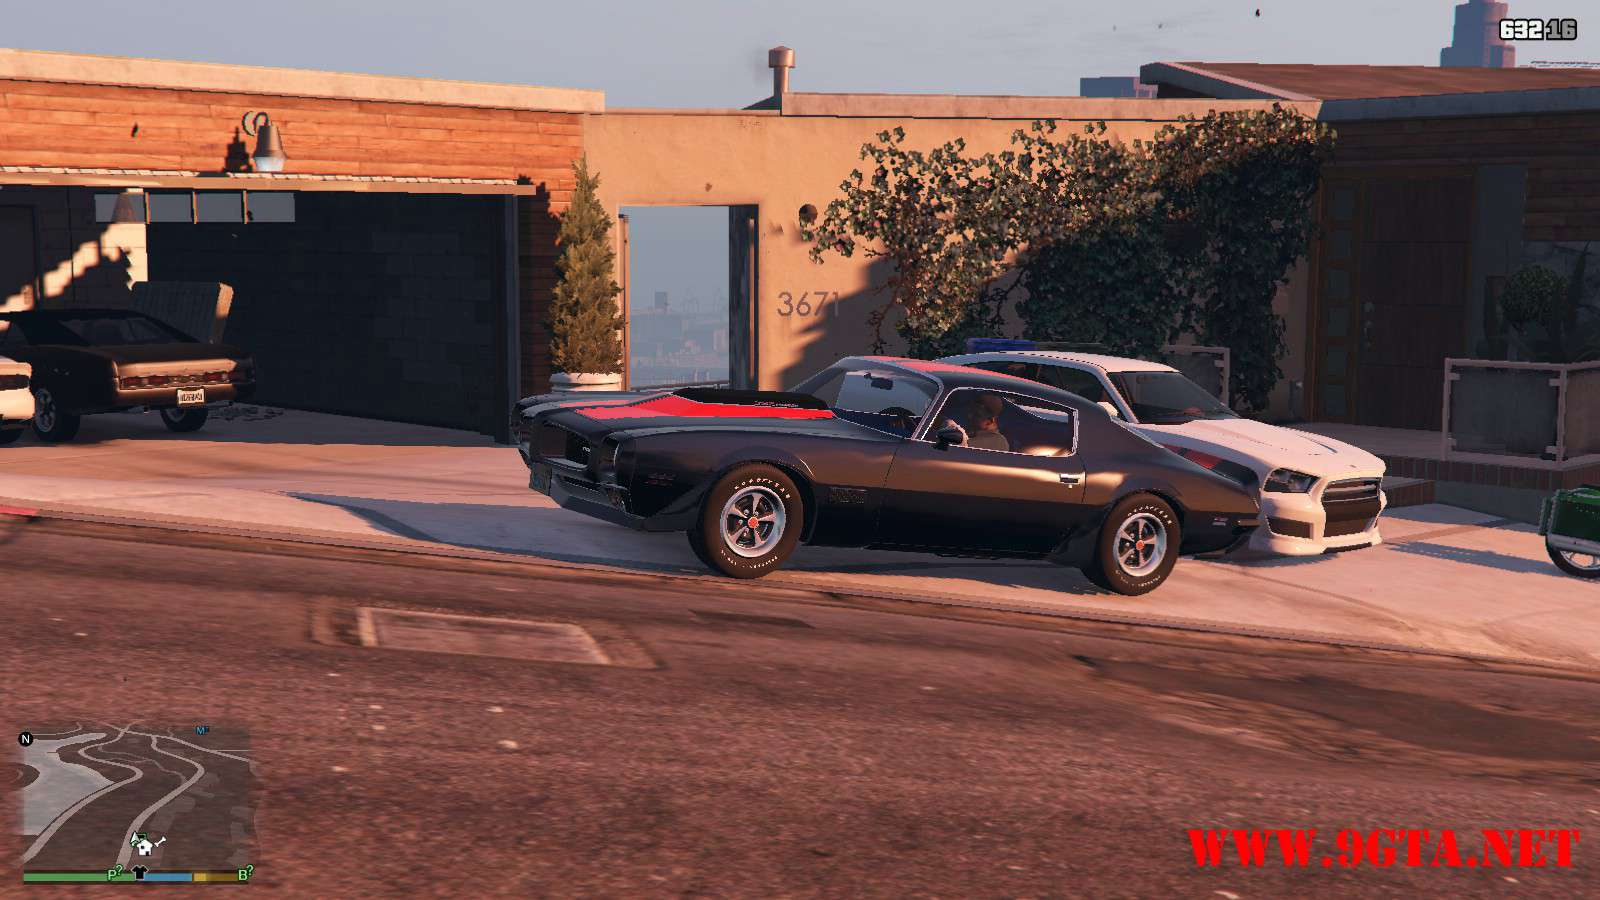 1970 Pontiac Firebird v1.0 GTA5 Mods (15)